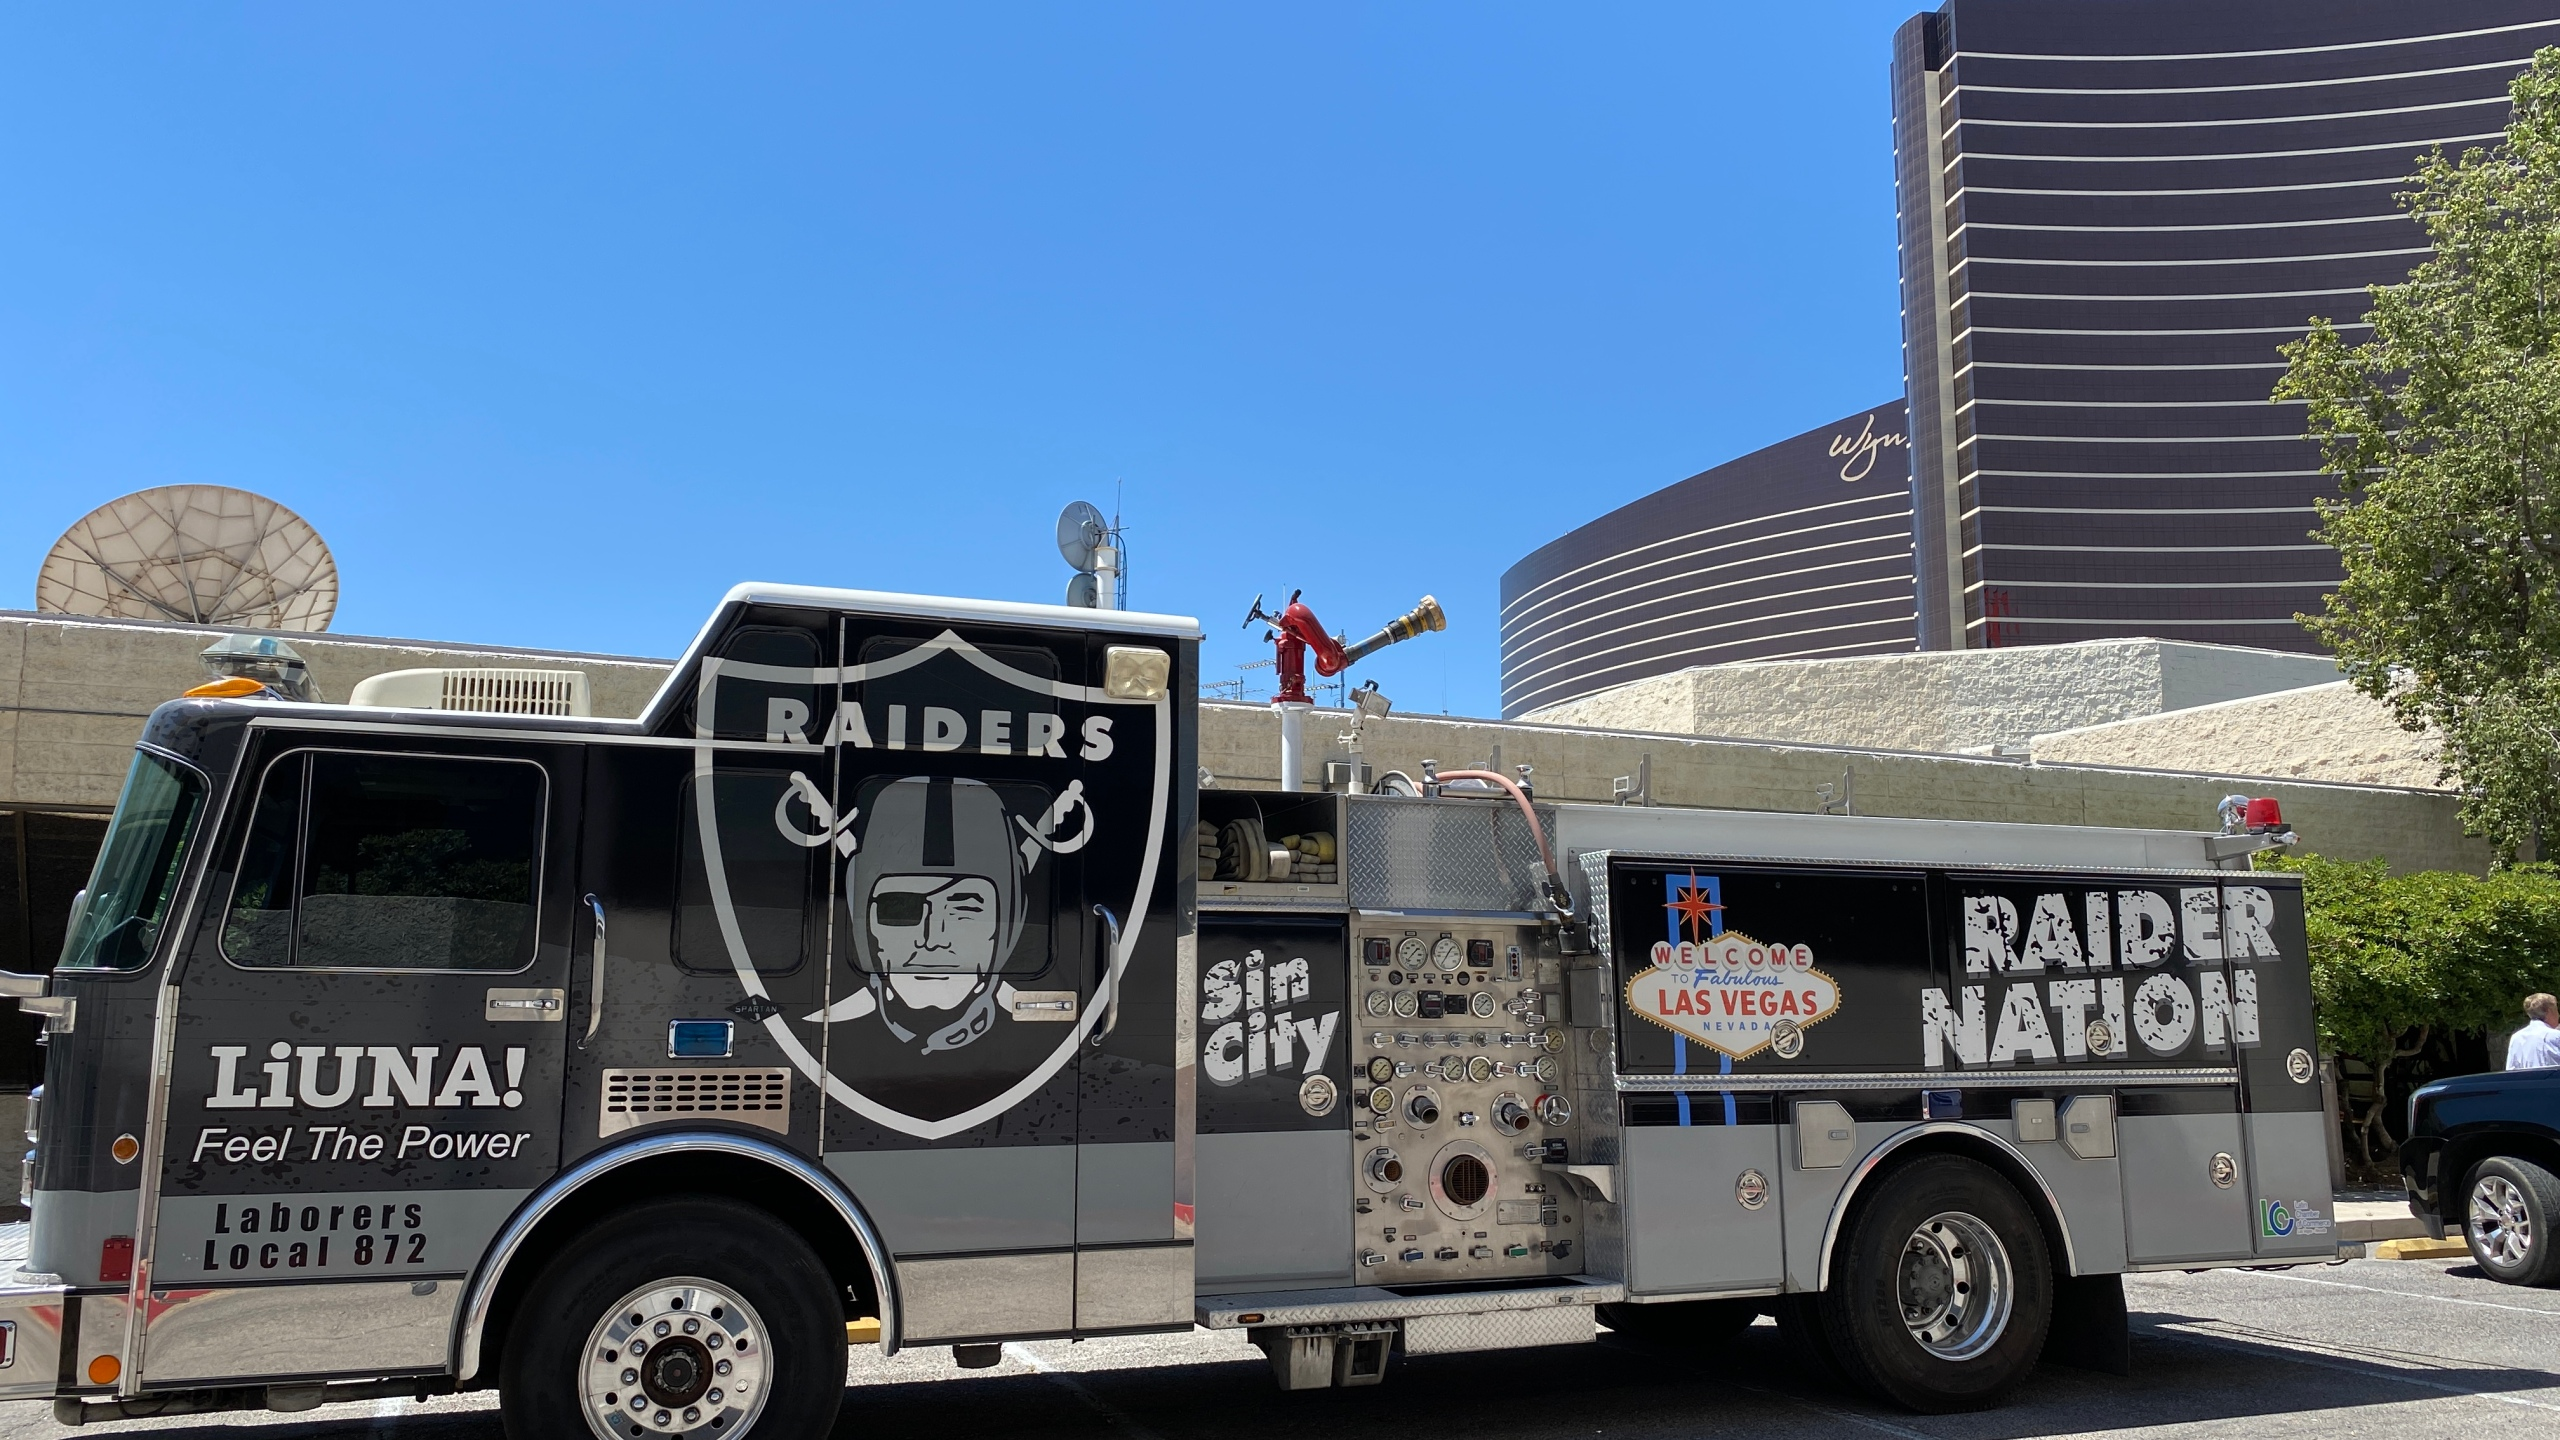 Raiders Fan Day Las Vegas Viewers Show Off Their Silver And Black Your Photos Klas